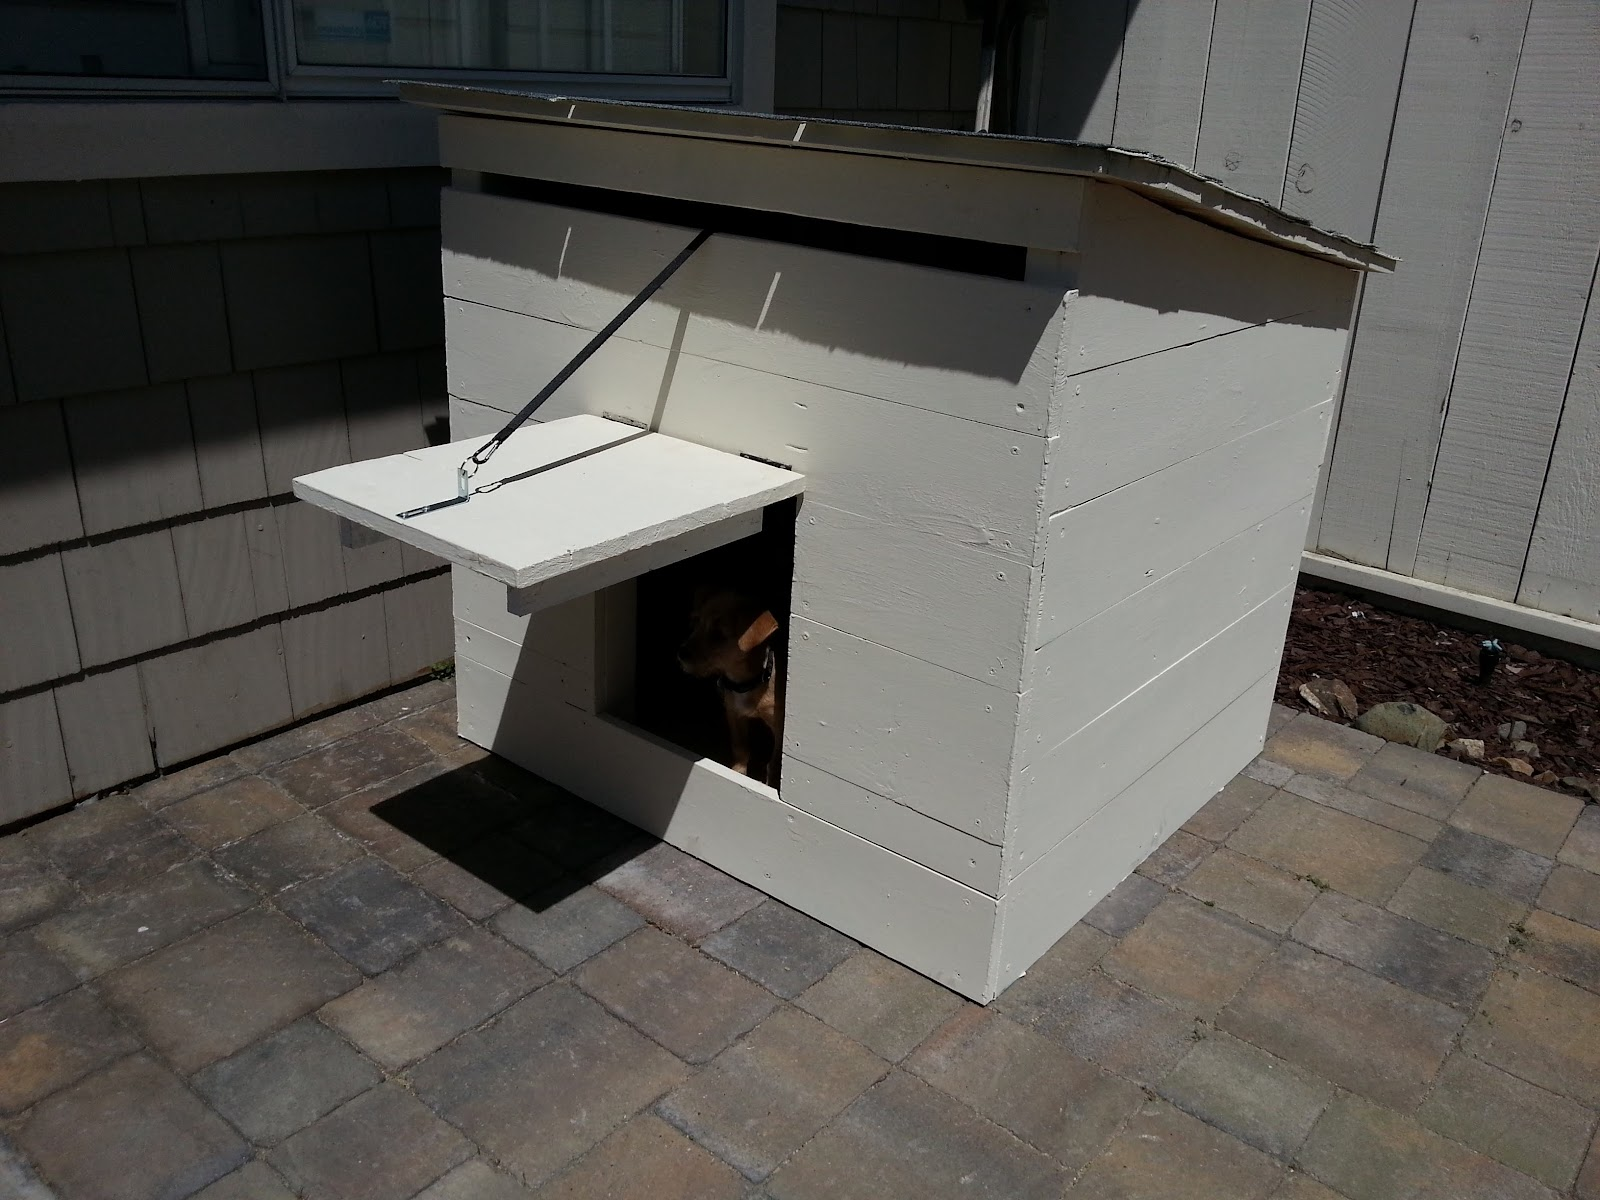 the nifty nest: DIY Mini Ranch Style Doghouse on ranch mansions, southern brick home plans, mediterranean style home plans, ranch blueprints, large family home plans, l-shaped range home plans, rustic home plans, 3 car garage ranch plans, luxury home plans, custom home plans, 1 600 sf ranch plans, ranch horses, cabin plans, log home plans, ranch decks, new ranch style home plans, patio home plans, rambler style home plans, floor plans, ranch remodel before and after,